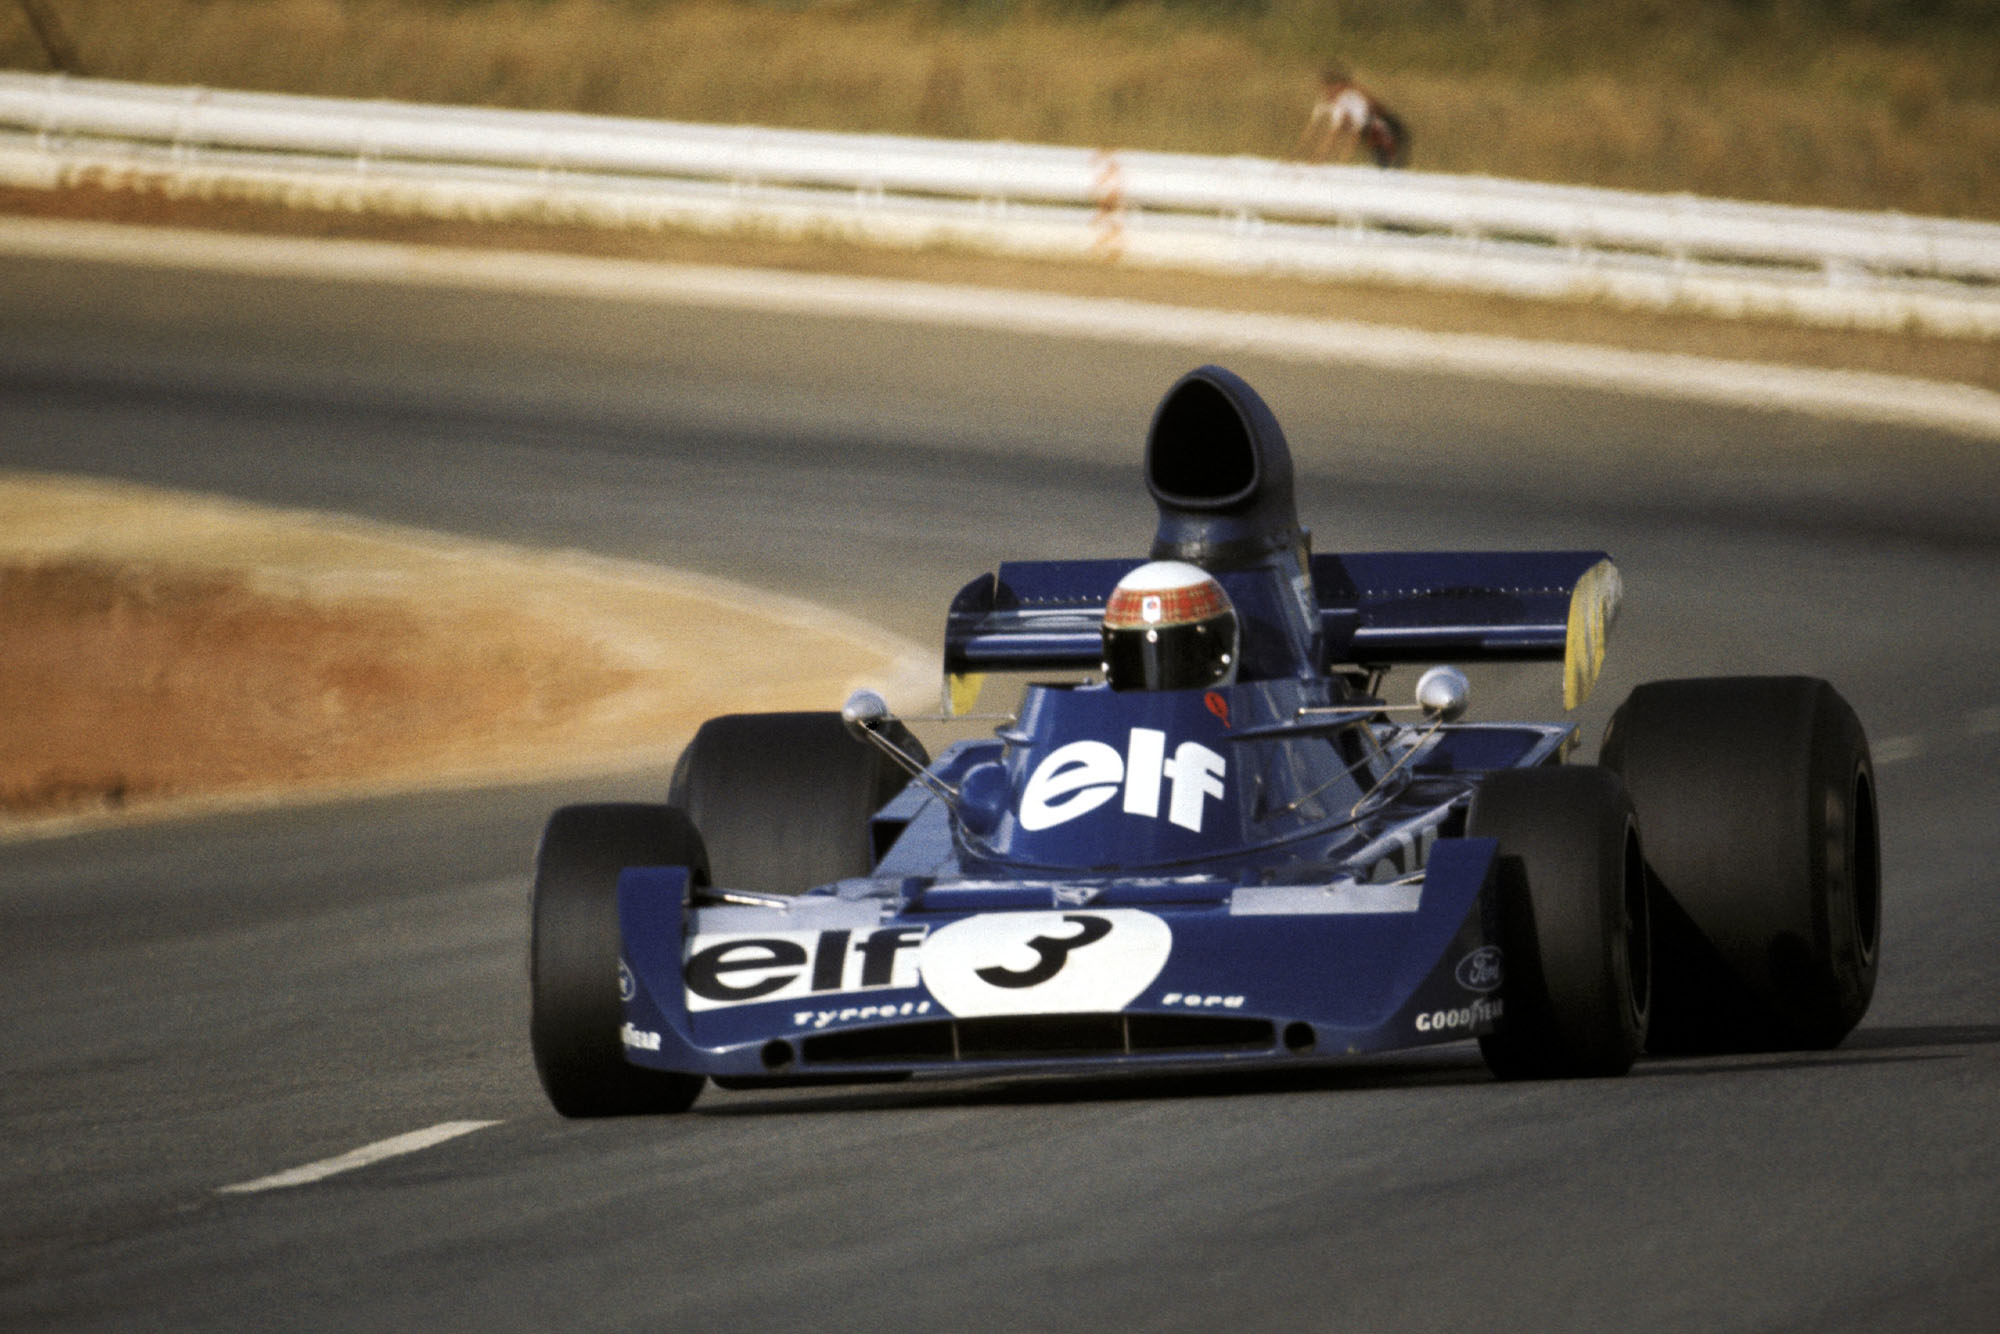 Jackie Stewart driving for Tyrrell at the 1973 South African Grand Prix